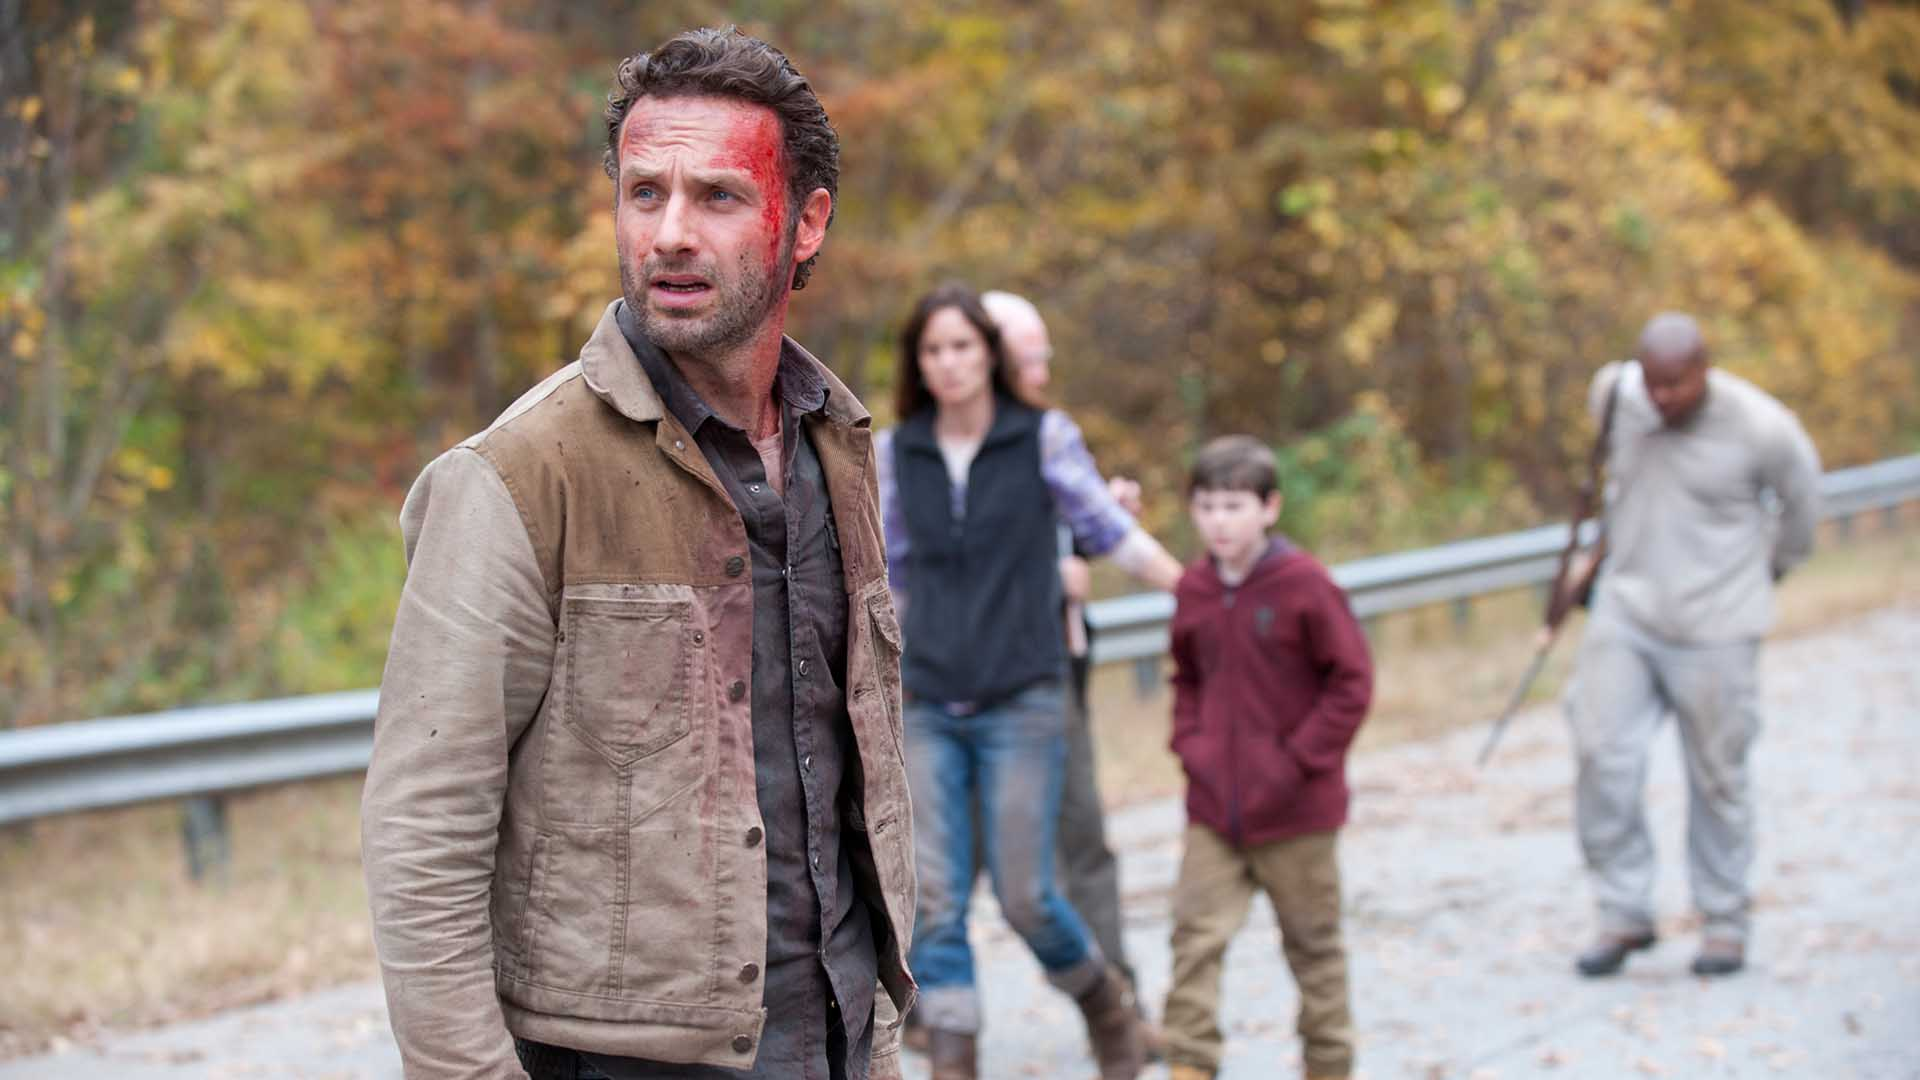 Rick stands with a bloodied forehead